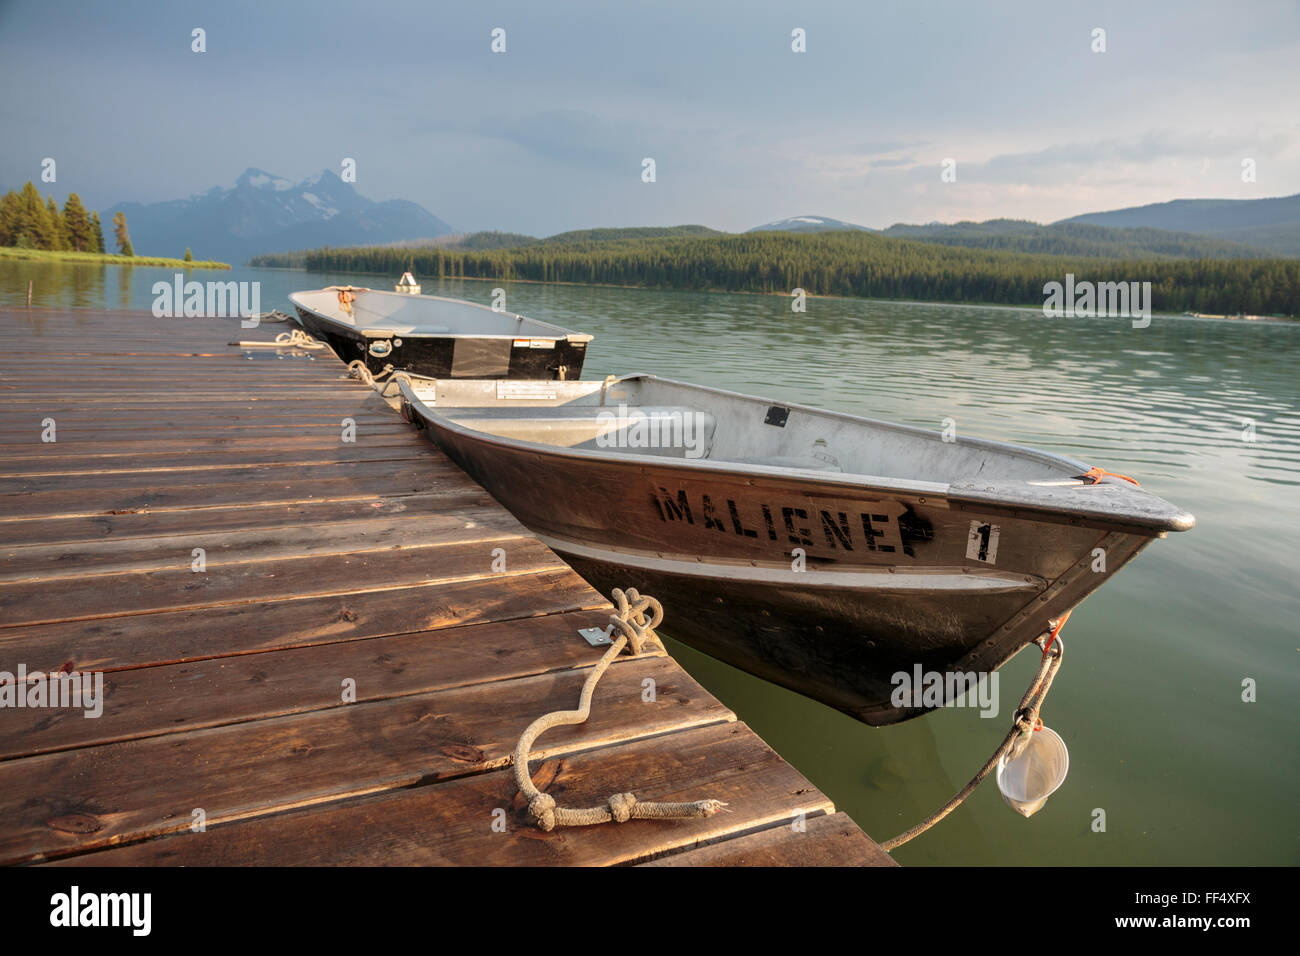 Evening light over Jasper National Park's Maligne Lake and boats available for rent at the historic Curly Phillips - Stock Image